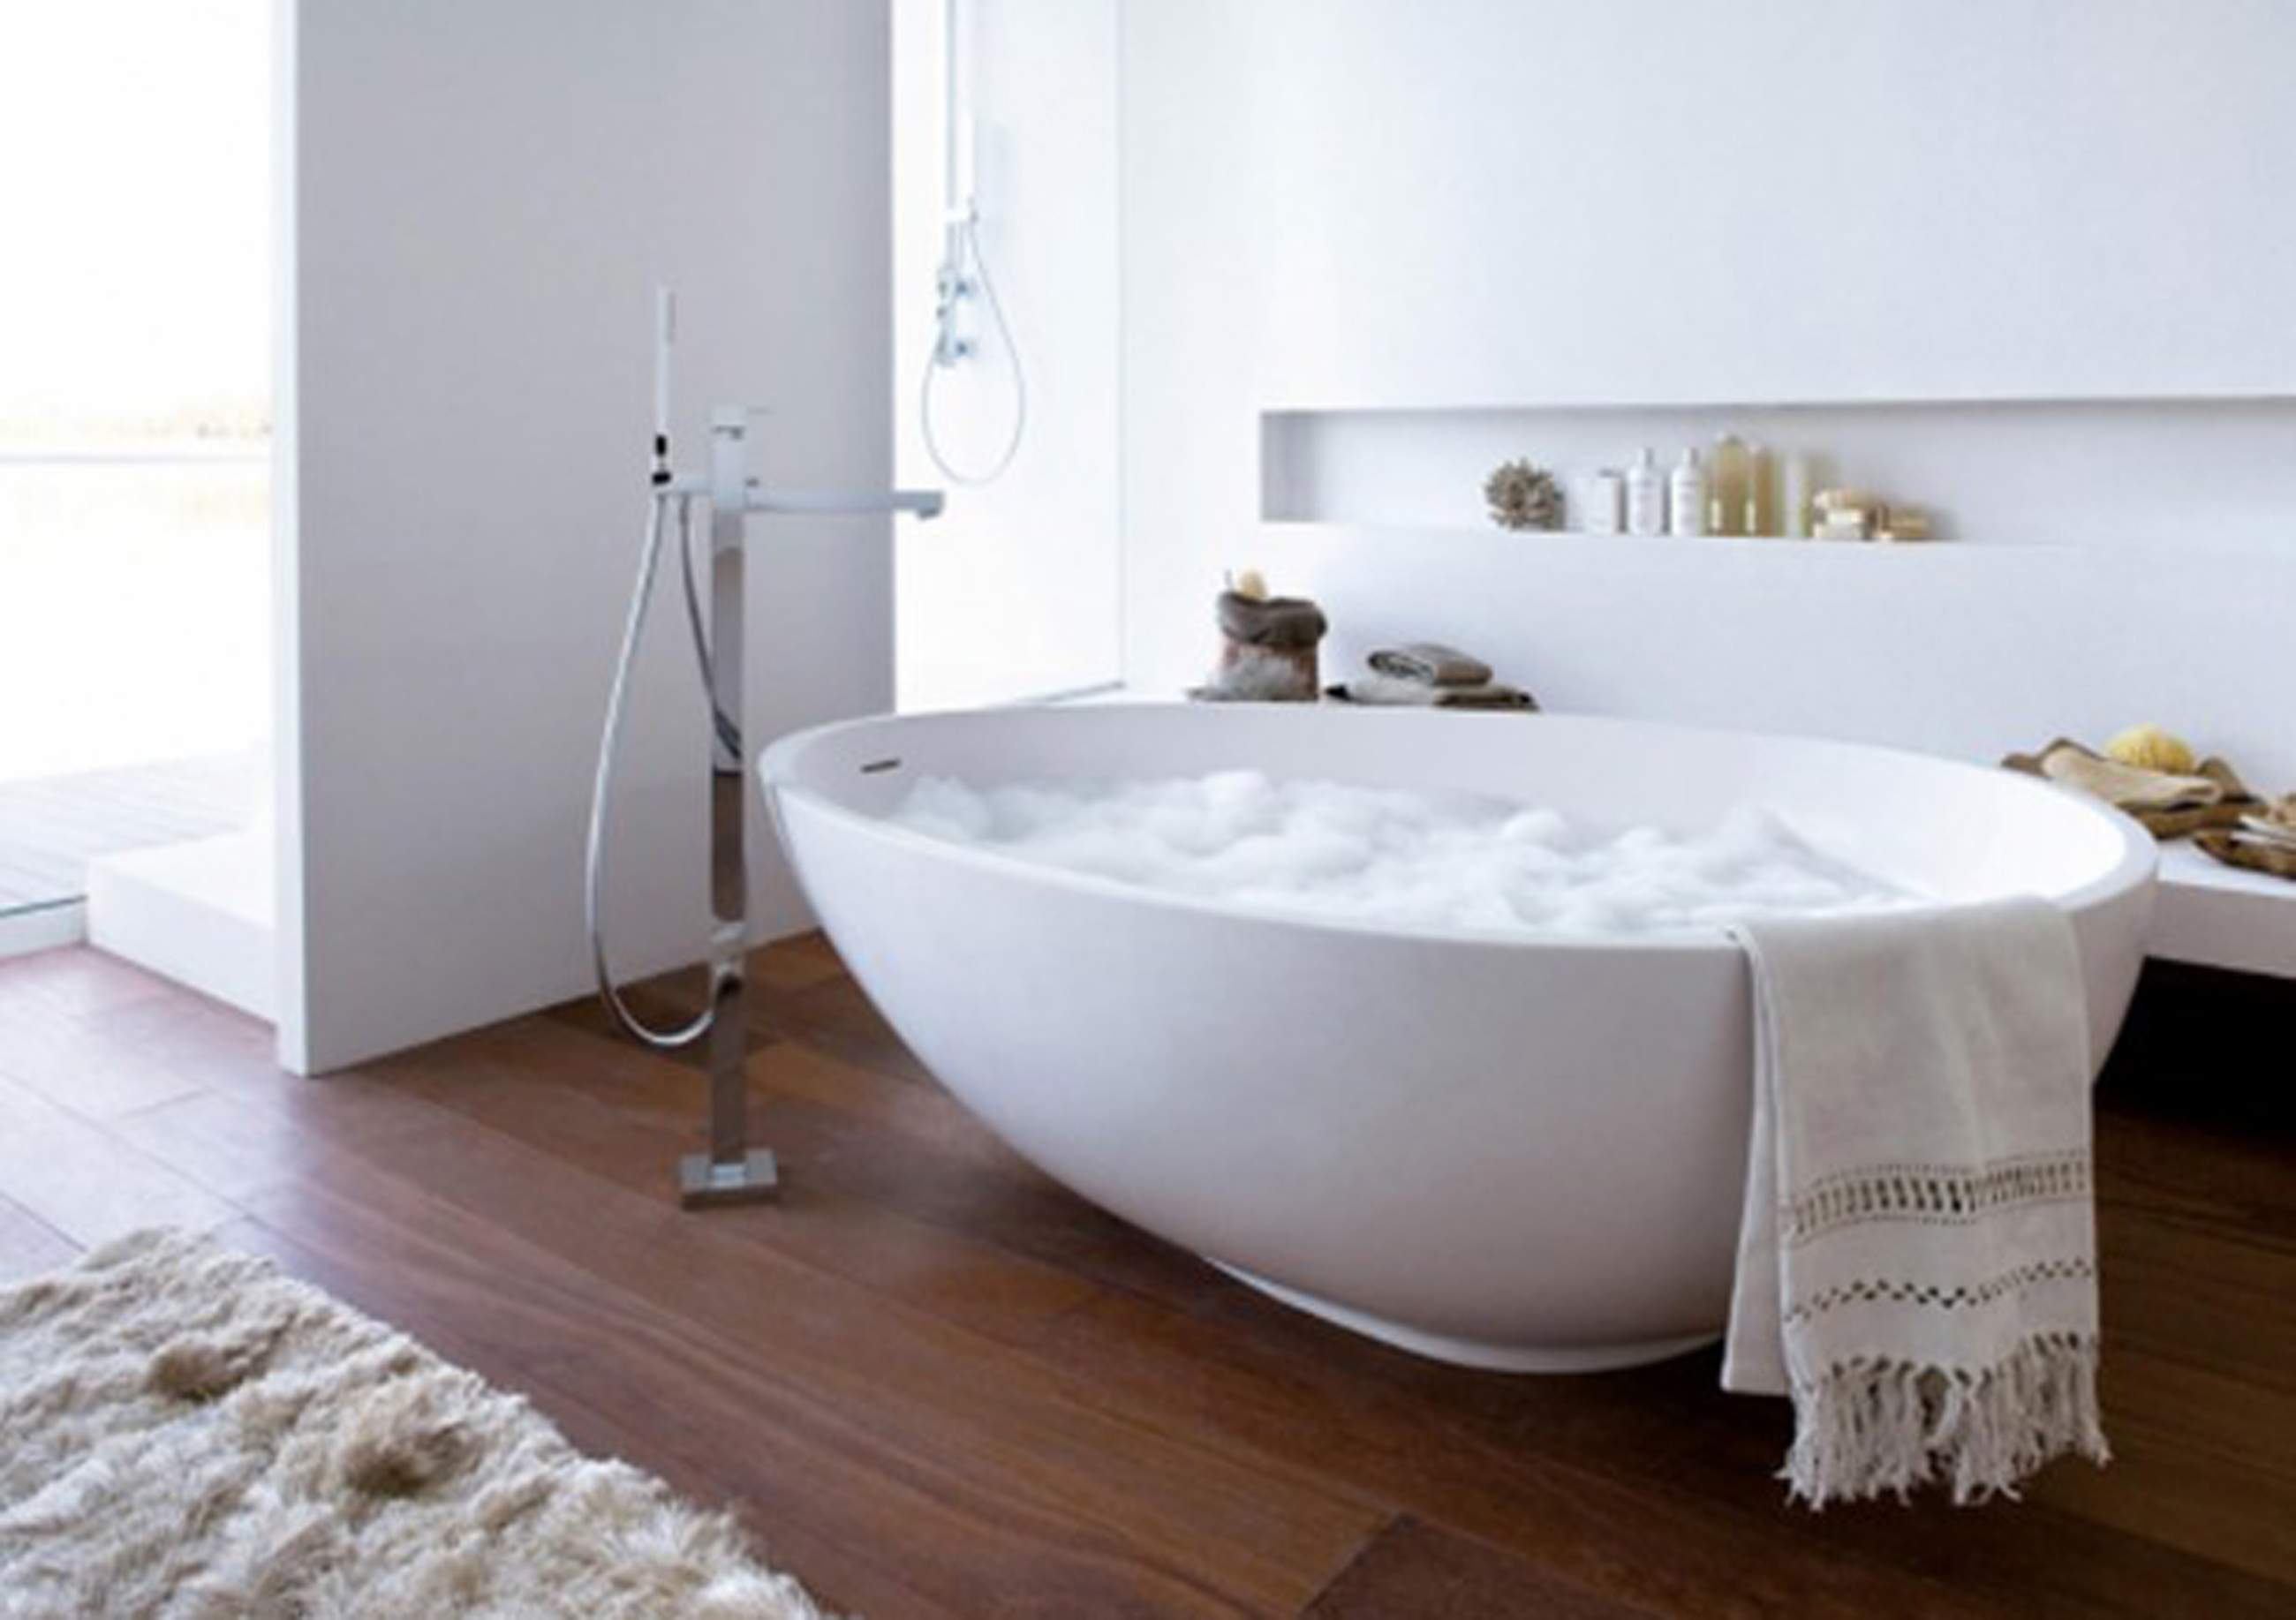 Simple Bathroom Fascinating White Bathtub Design Idea With White Wall With Open Shelf Plus Bottles And Brownhardwood Floor Tile Fascinating Bathtub Design Ideas (View 2 of 23)